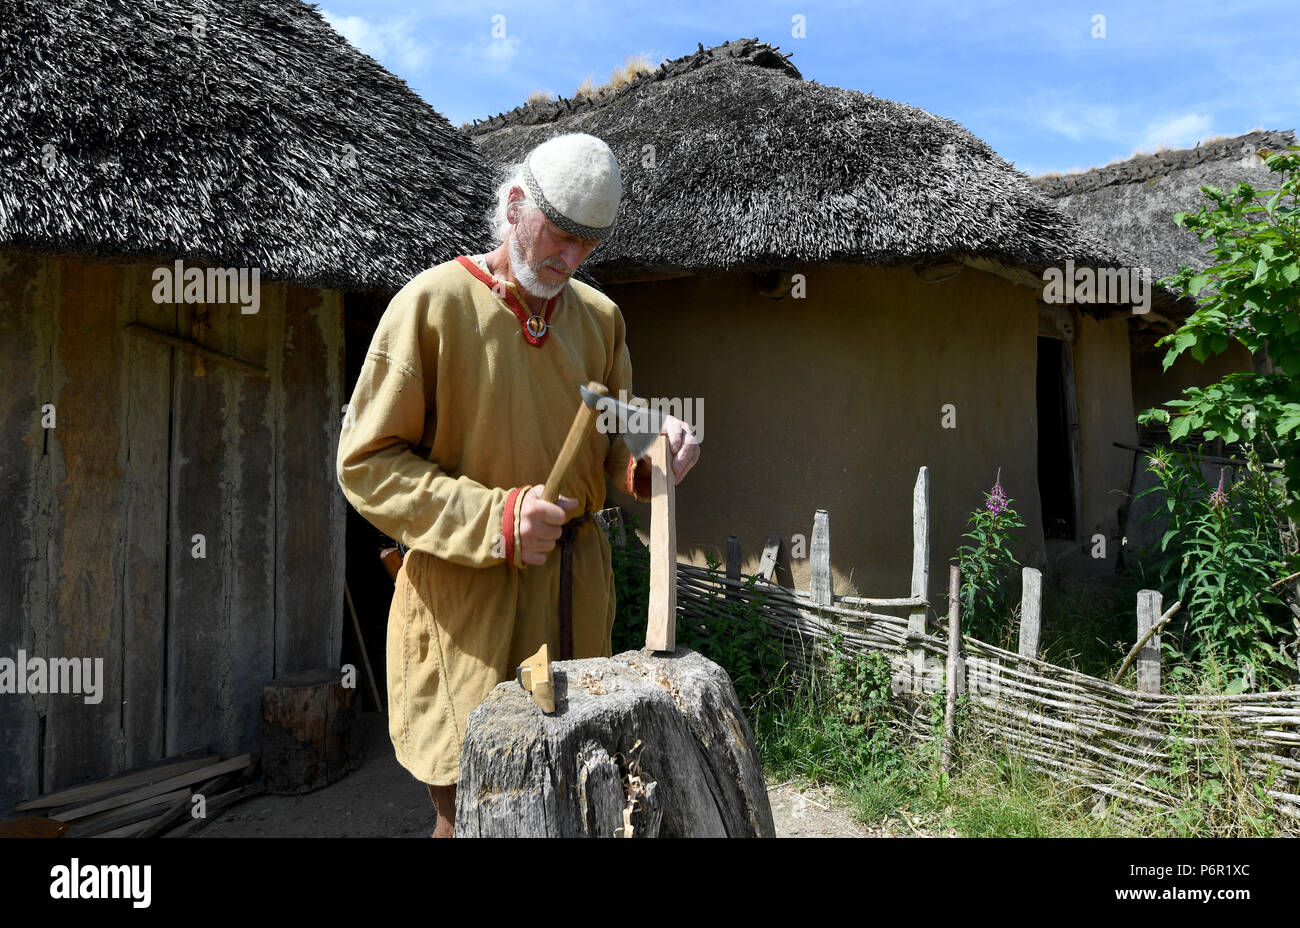 19.06.2018, Schleswig-Holstein, Busdorf: An employee in authentic Viking clothing works on the grounds of the Viking houses of Haithabu. The UNESCO World Heritage Kowithee will decide on the inclusion of new monuments in the World Heritage List at its meeting in Bahrain from 24 June to 3 July. From Germany are Viking-time Statten in Danewerk and Haithabu in Schleswig here. (to dpa 'Wikingestatten as a World Heritage:' Then we play World League ') Photo: Carsten Rehder/dpa | usage worldwide - Stock Image